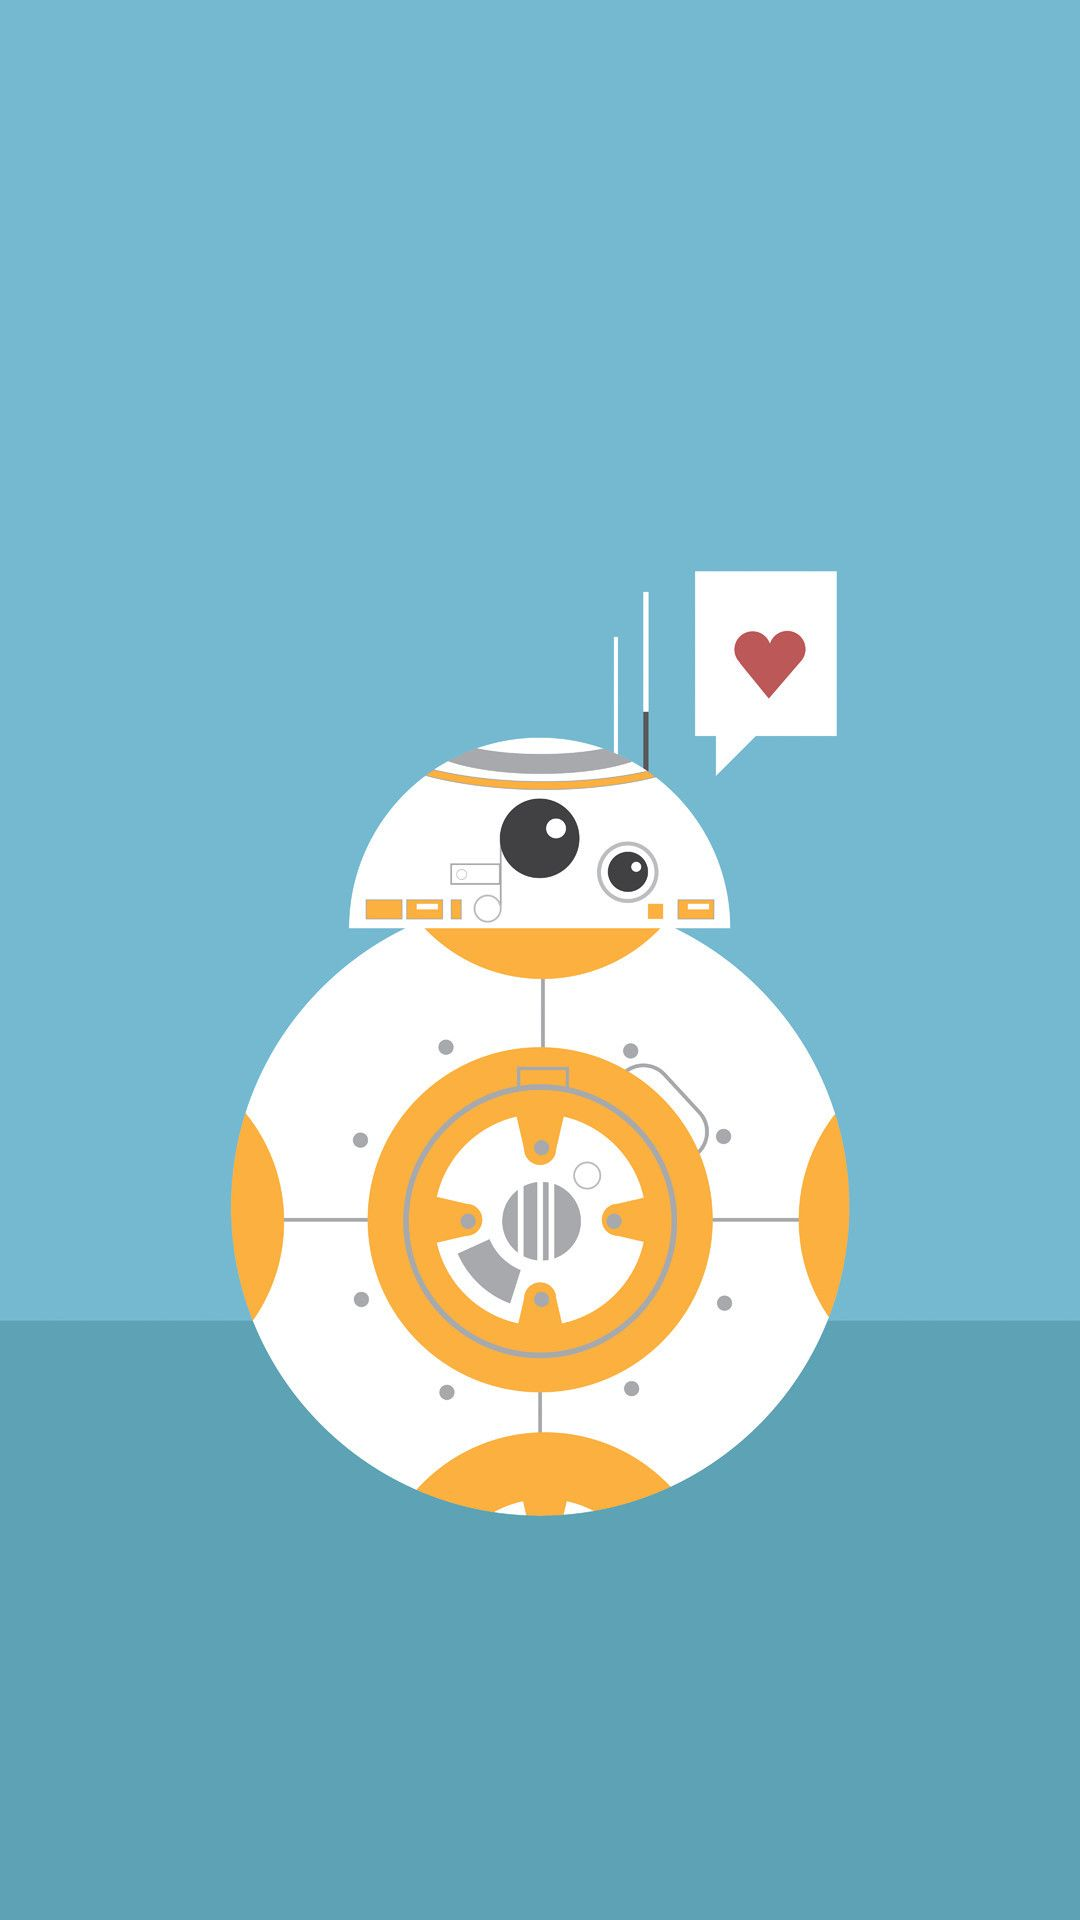 1080x1920 72+ Bb 8 Wallpapers on WallpaperPlay